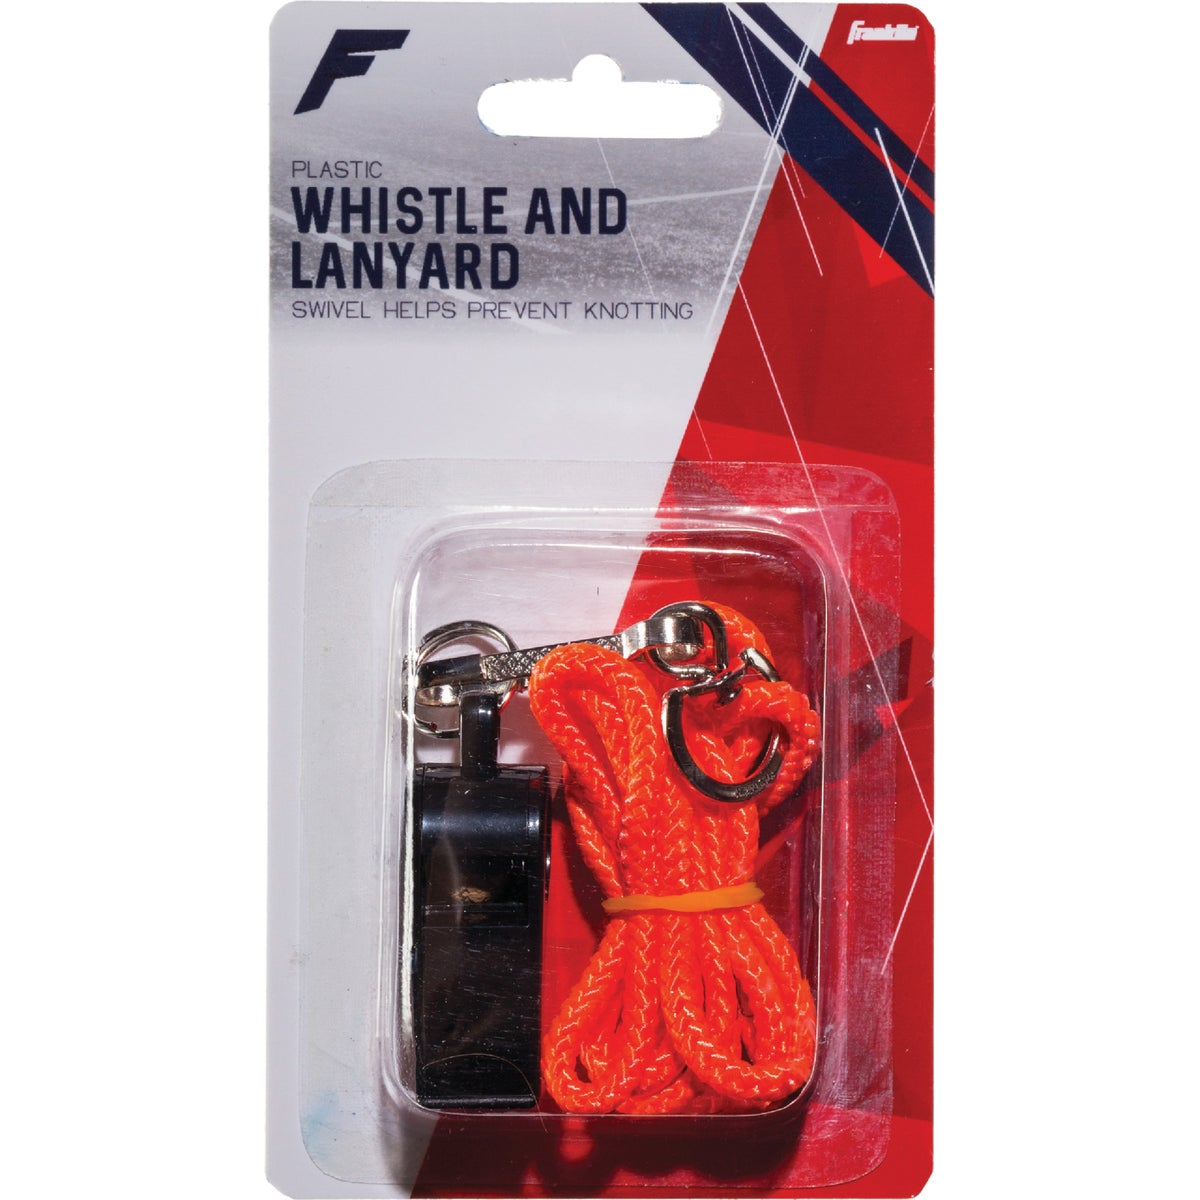 WHISTLE W/LANYARD - 8304SR by Huffy Sports